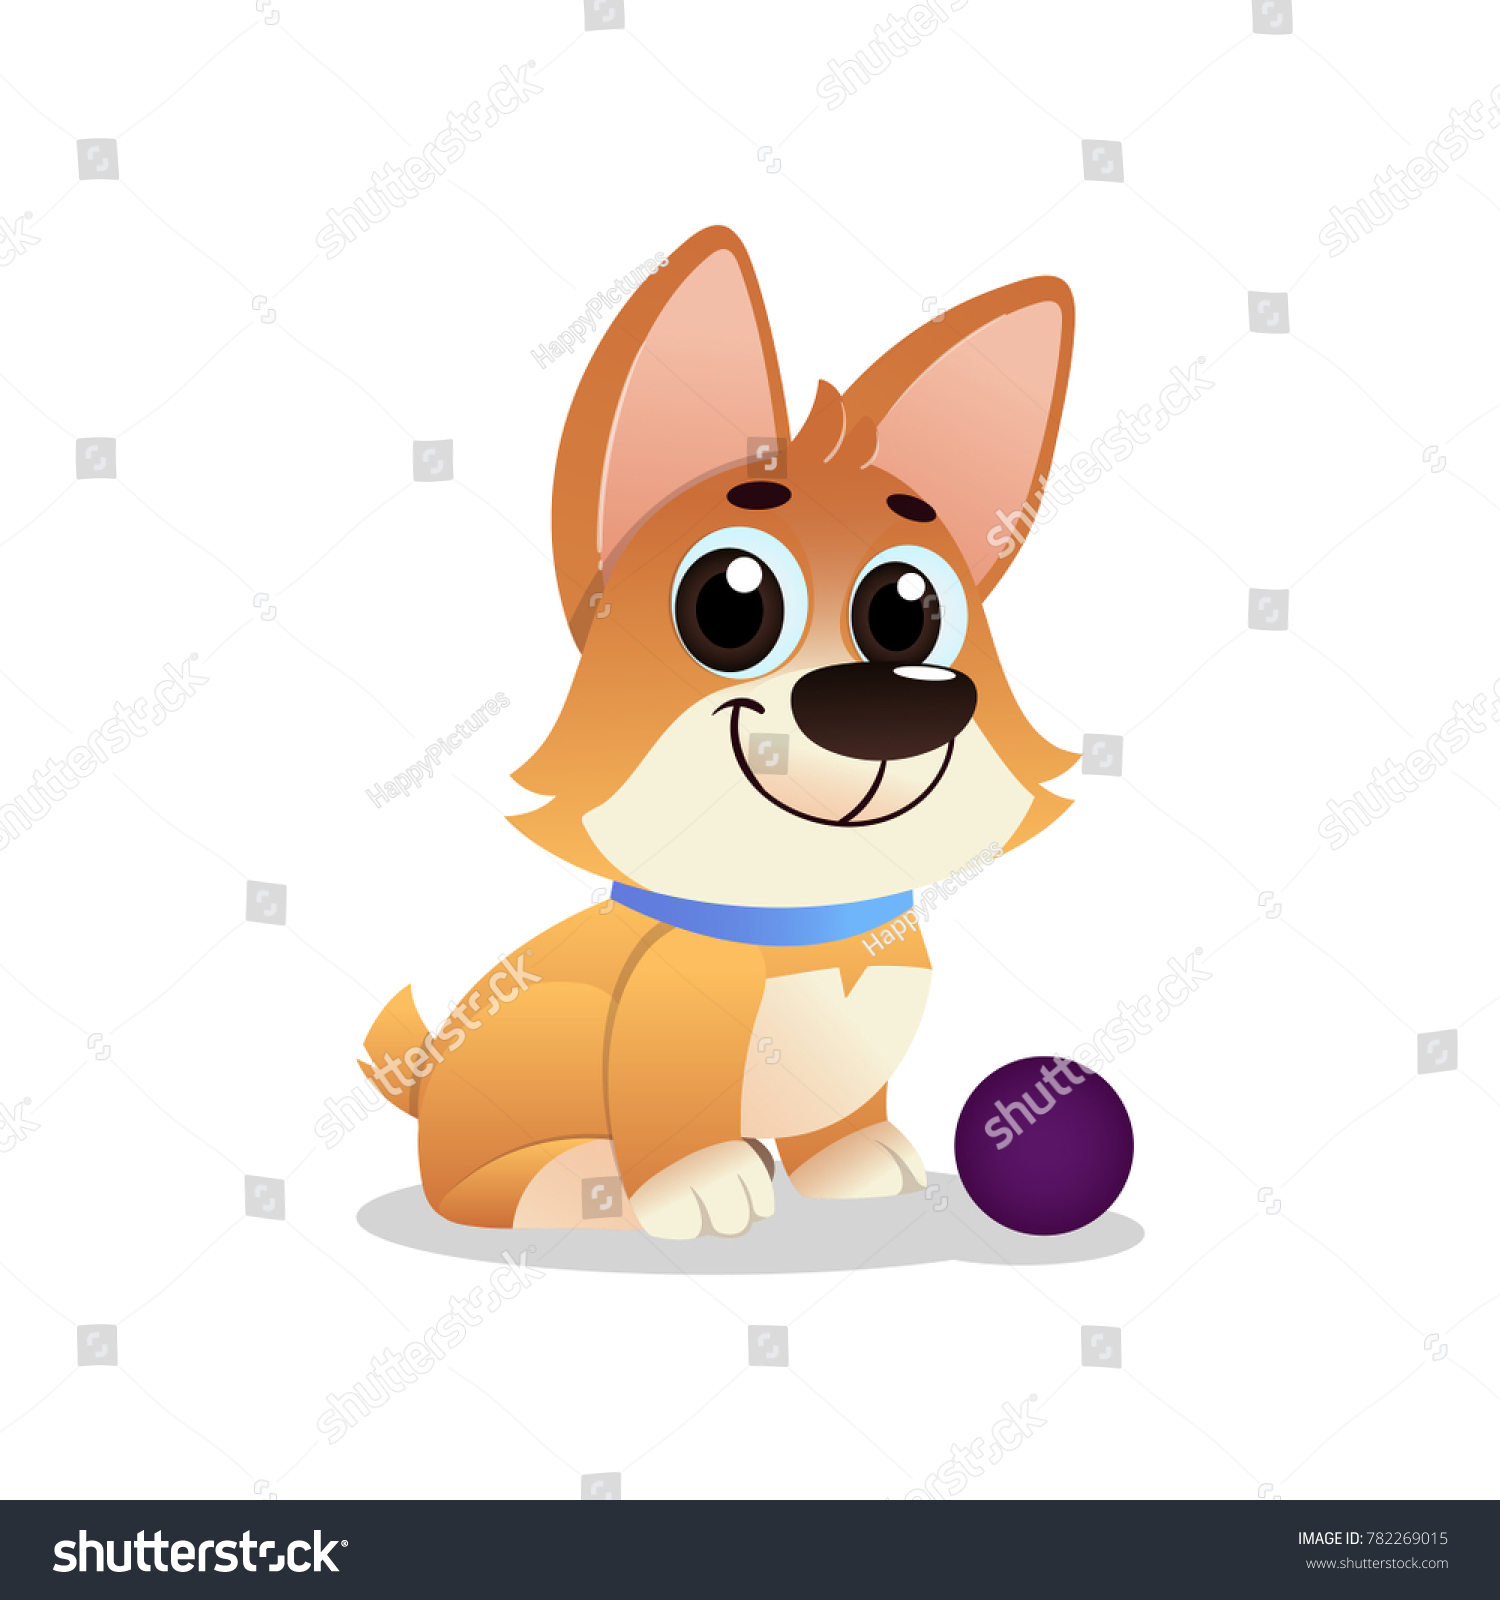 Cute cartoon dogs with big eyes to draw